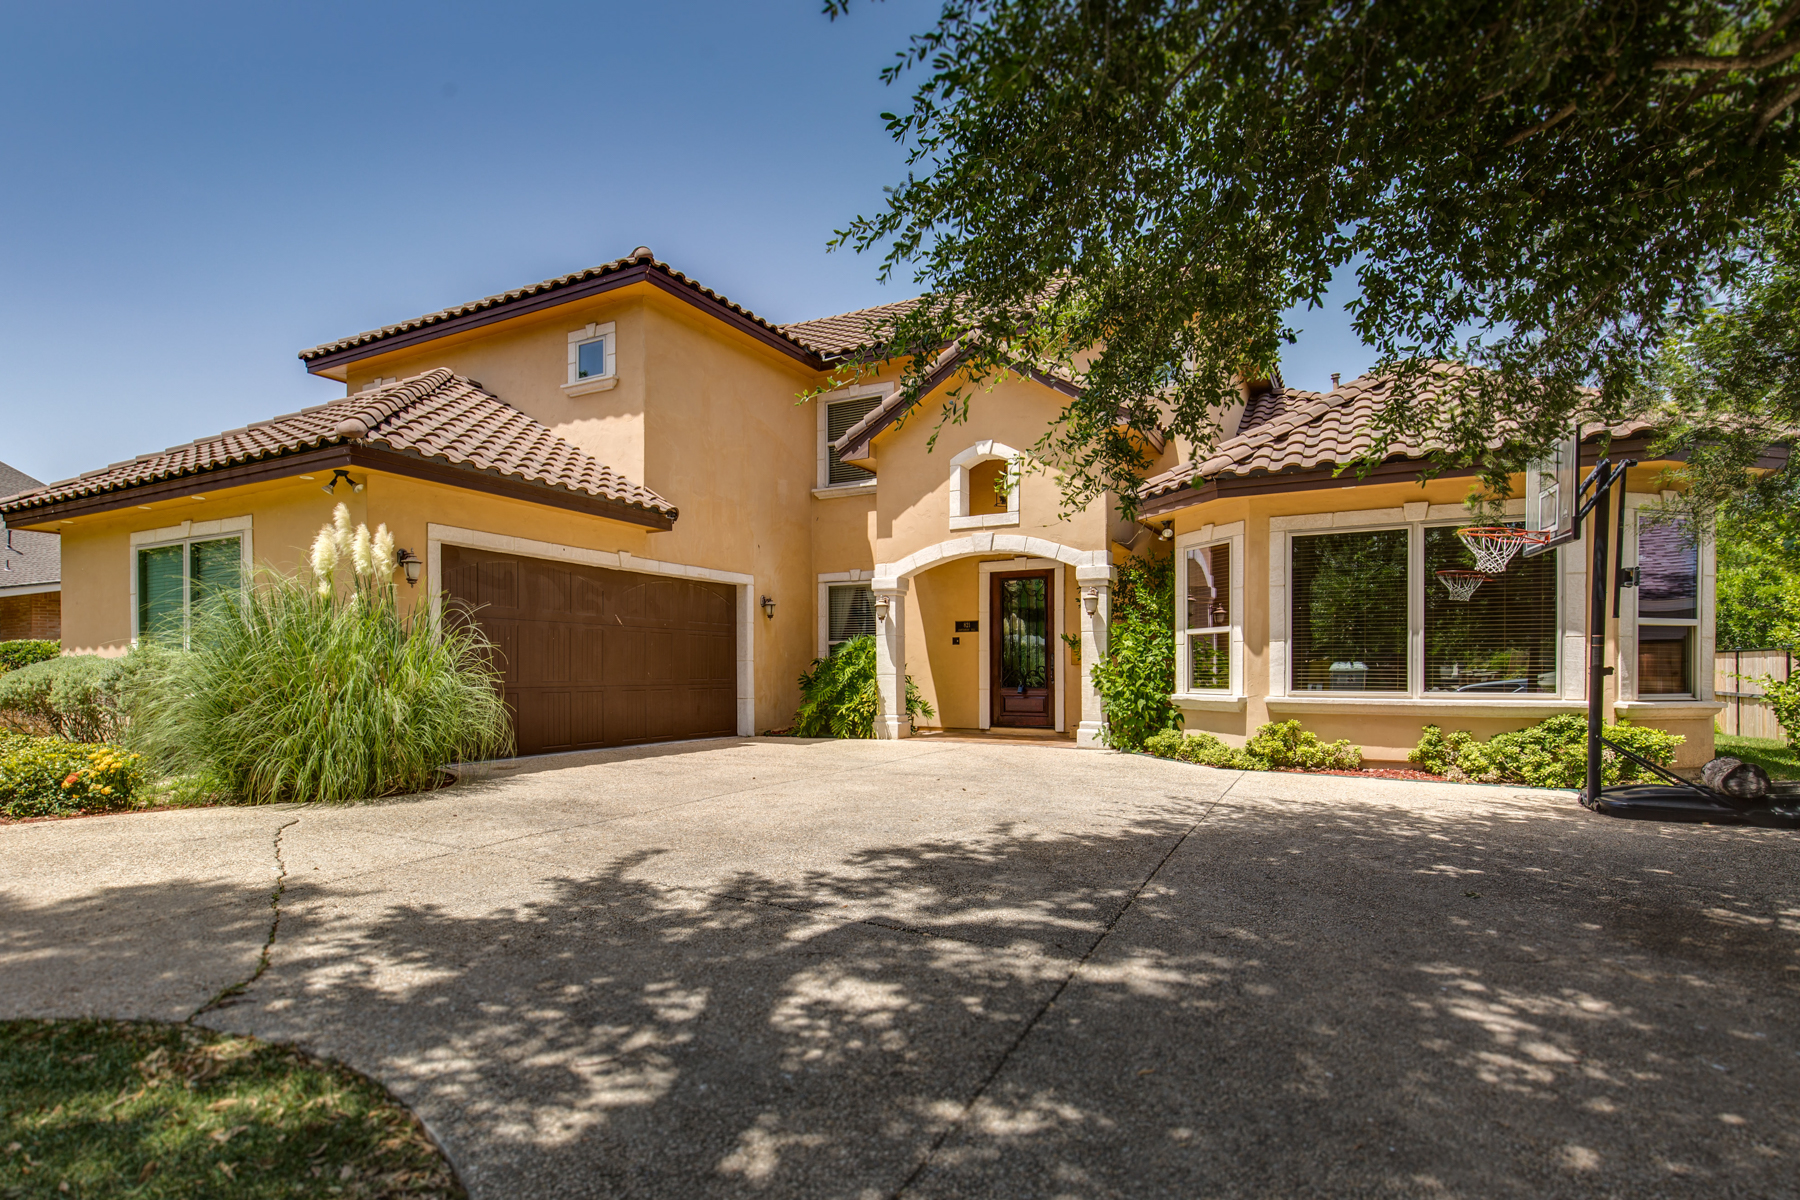 Single Family Home for Sale at Grand Mediterranean Estate in Terrell Hills 821 Canterbury Hill St San Antonio, Texas 78209 United States